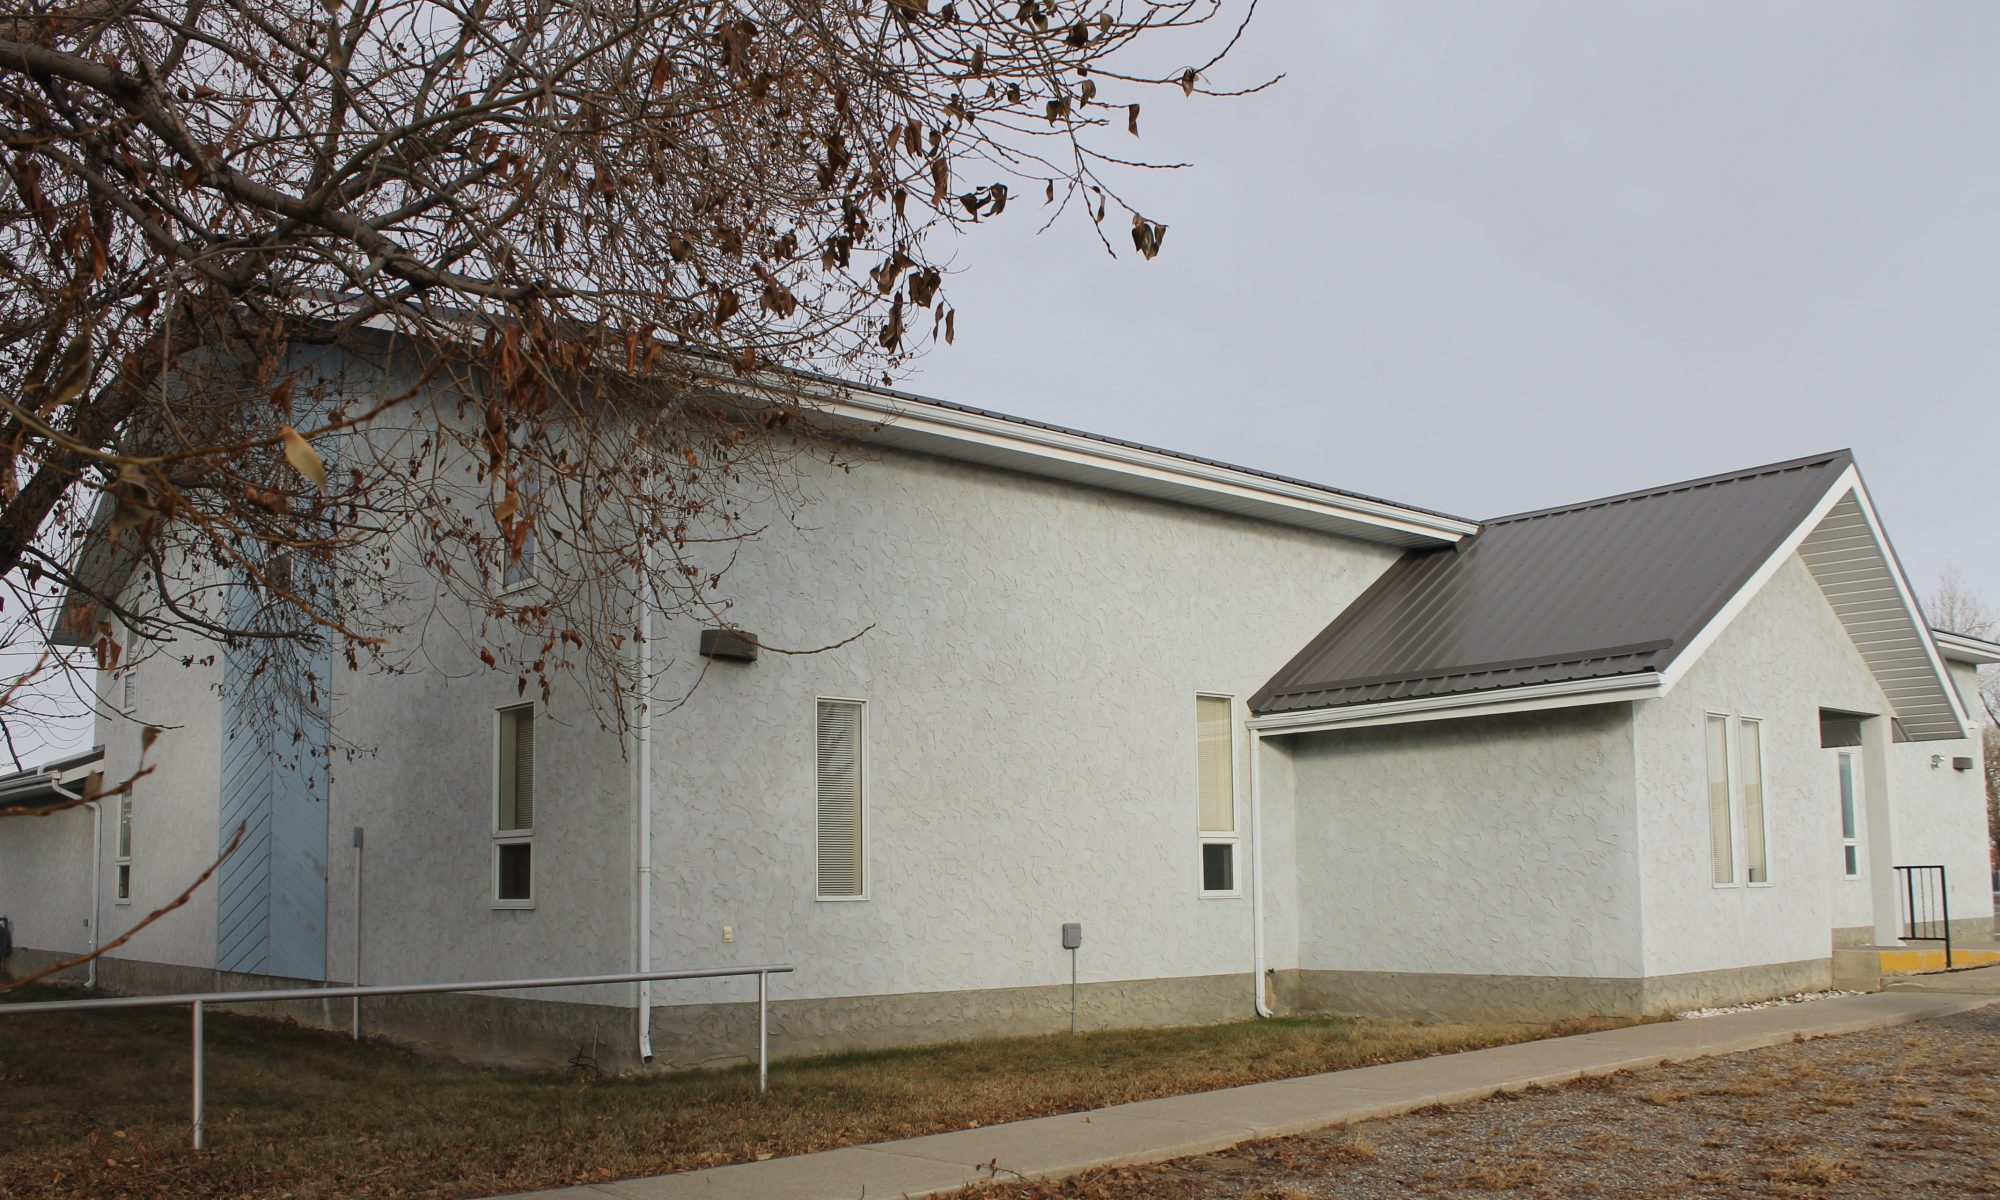 Nanton Baptist Church